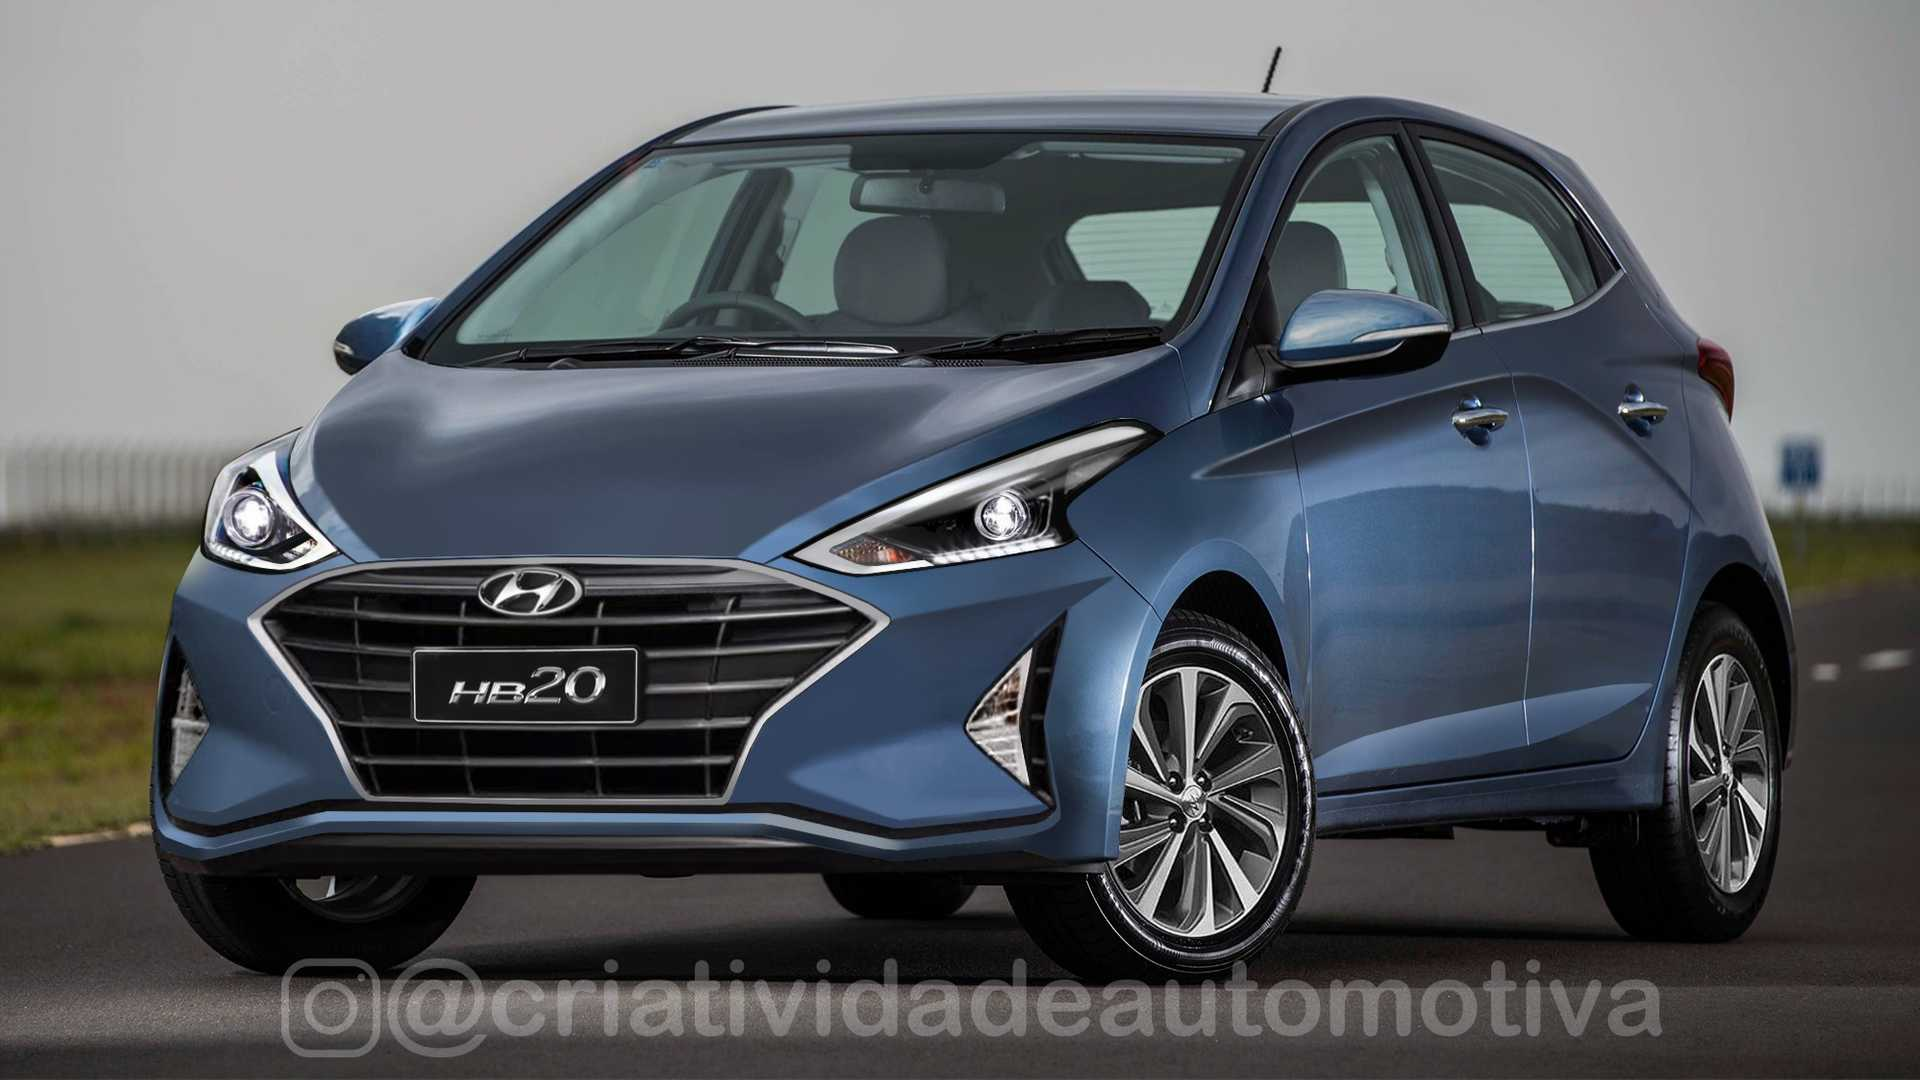 52 Gallery of Hyundai Hb20 2020 Price for Hyundai Hb20 2020